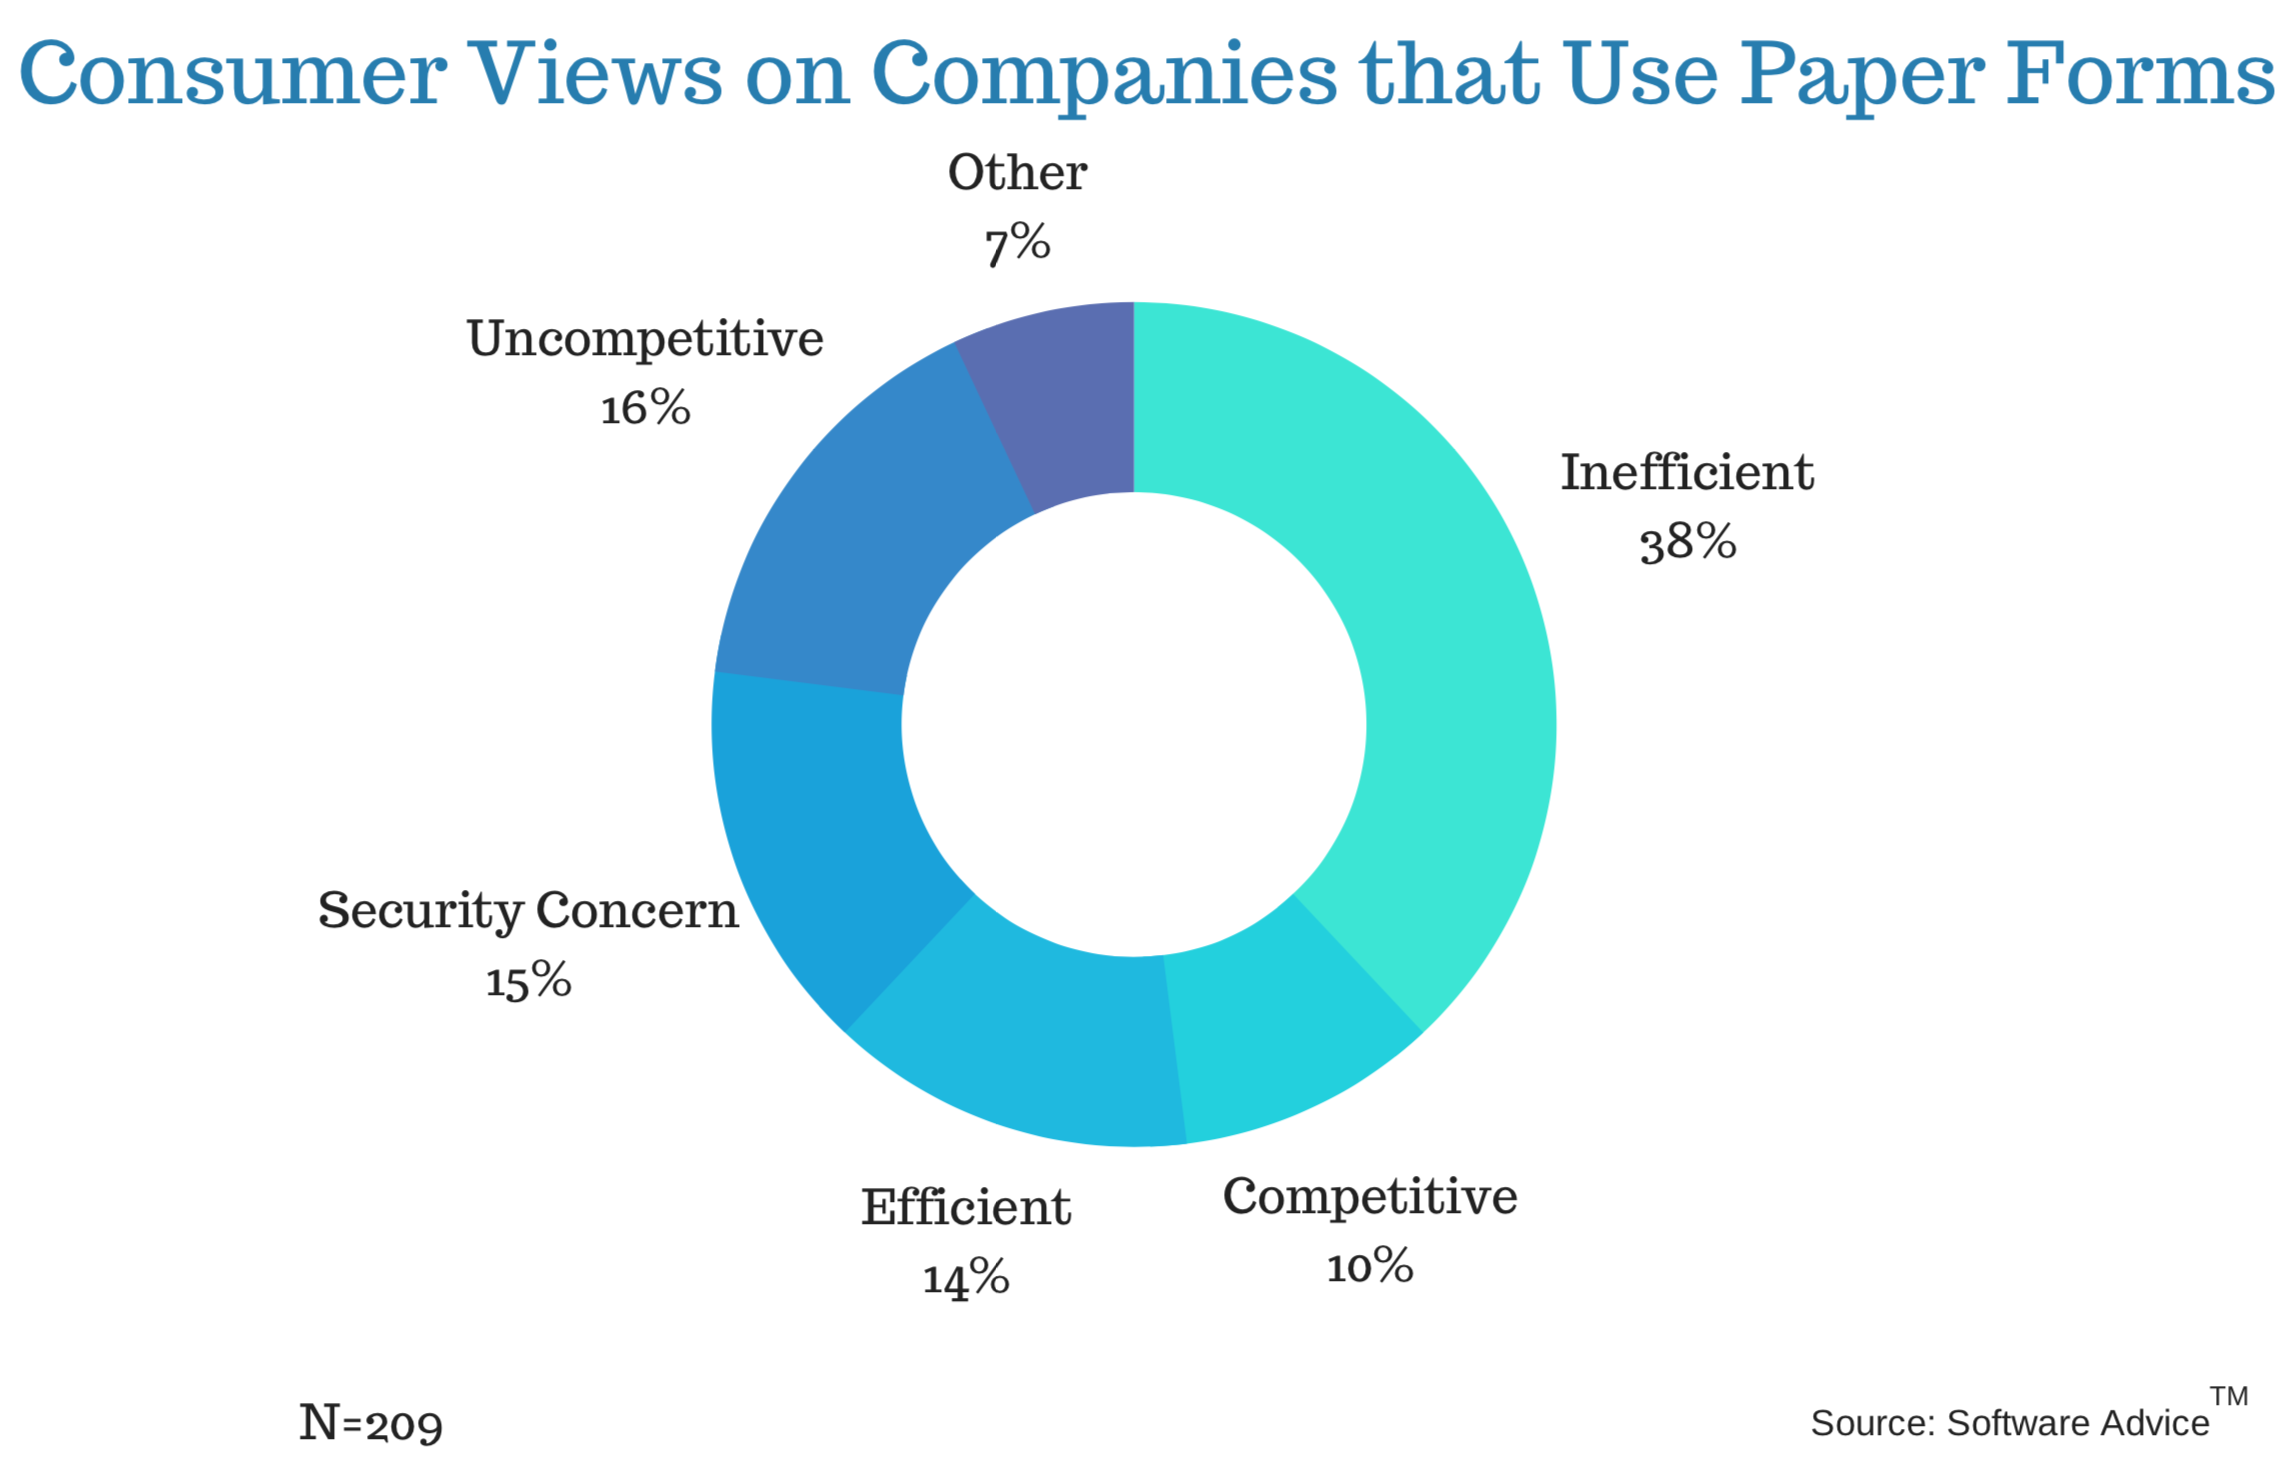 38% Consumers find companies using paper forms are inefficient.